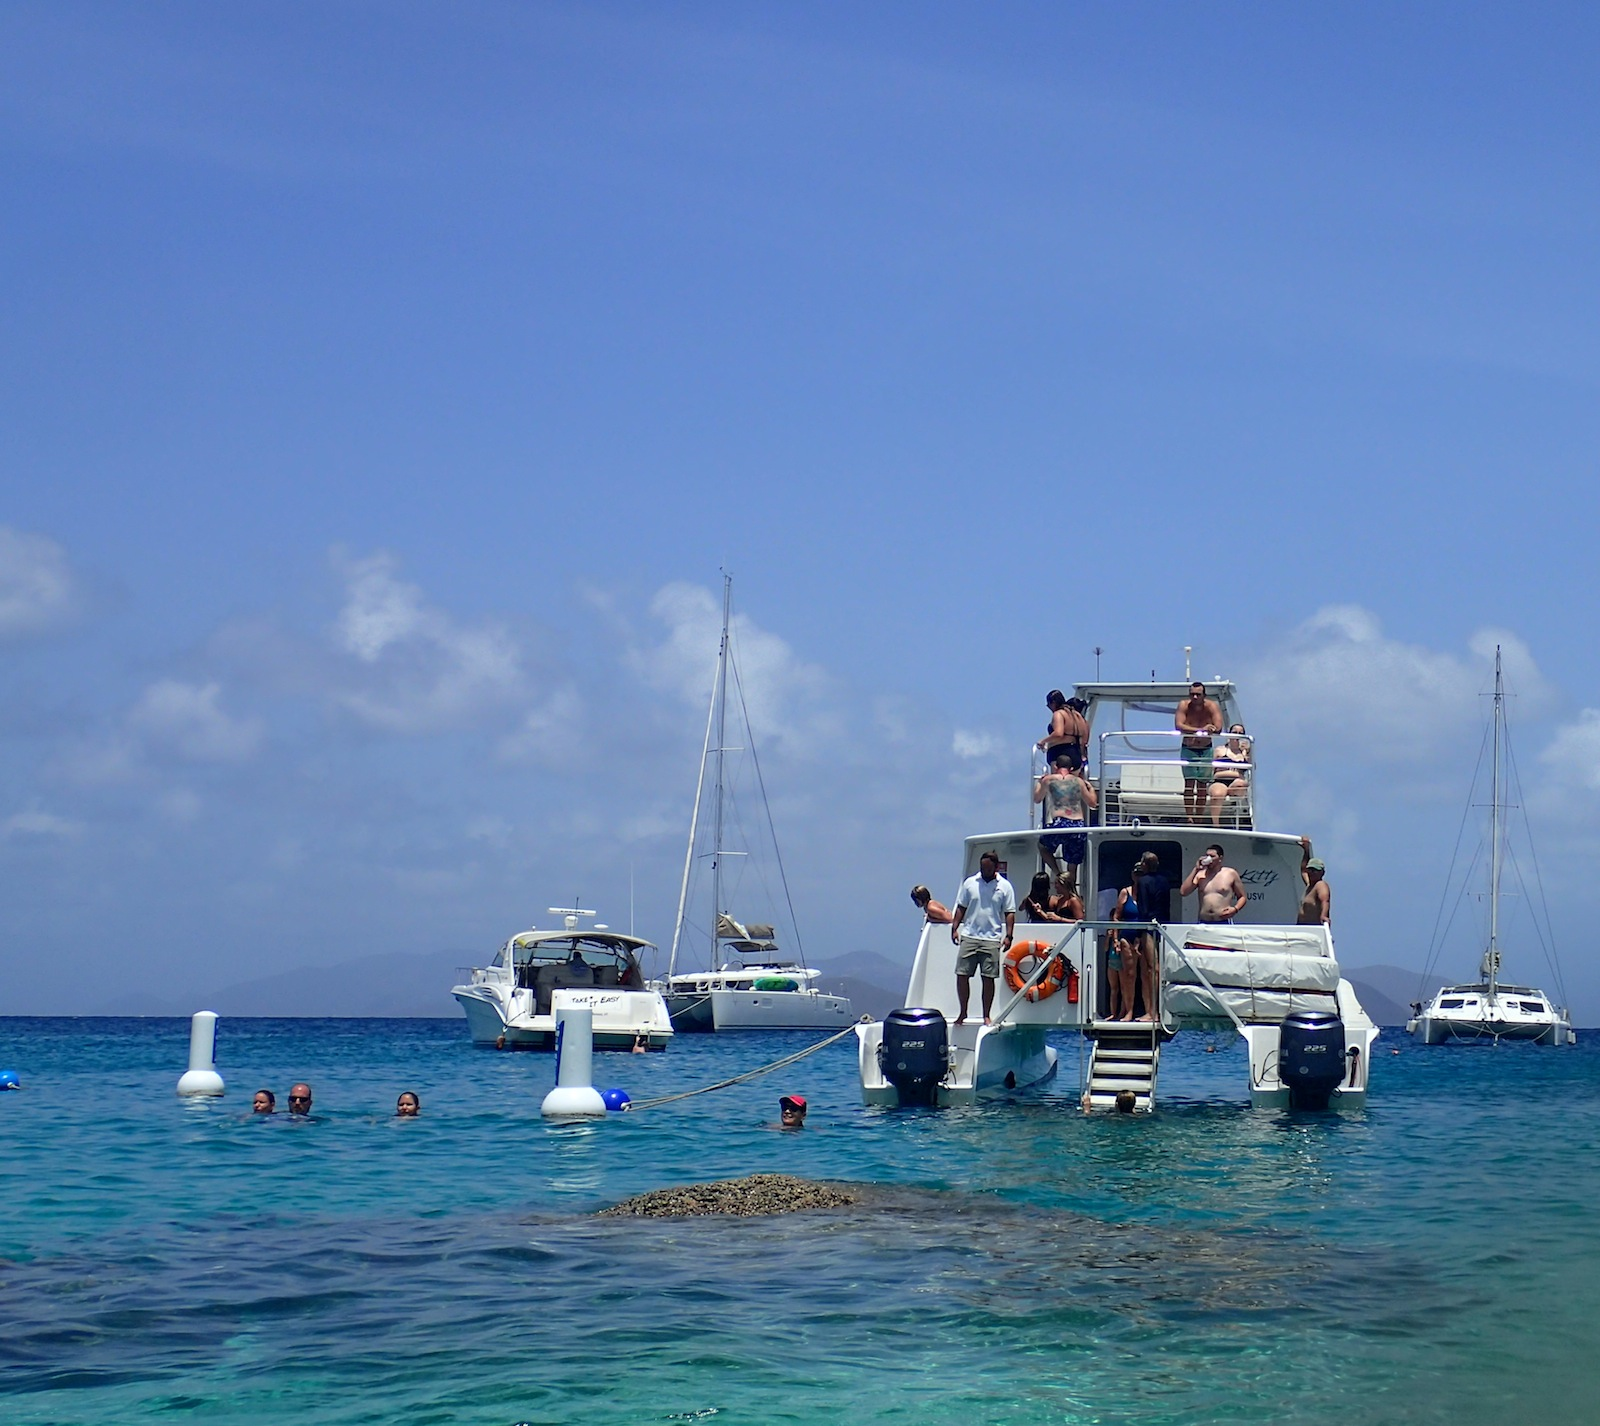 A perfect day of boating in the BVI's!